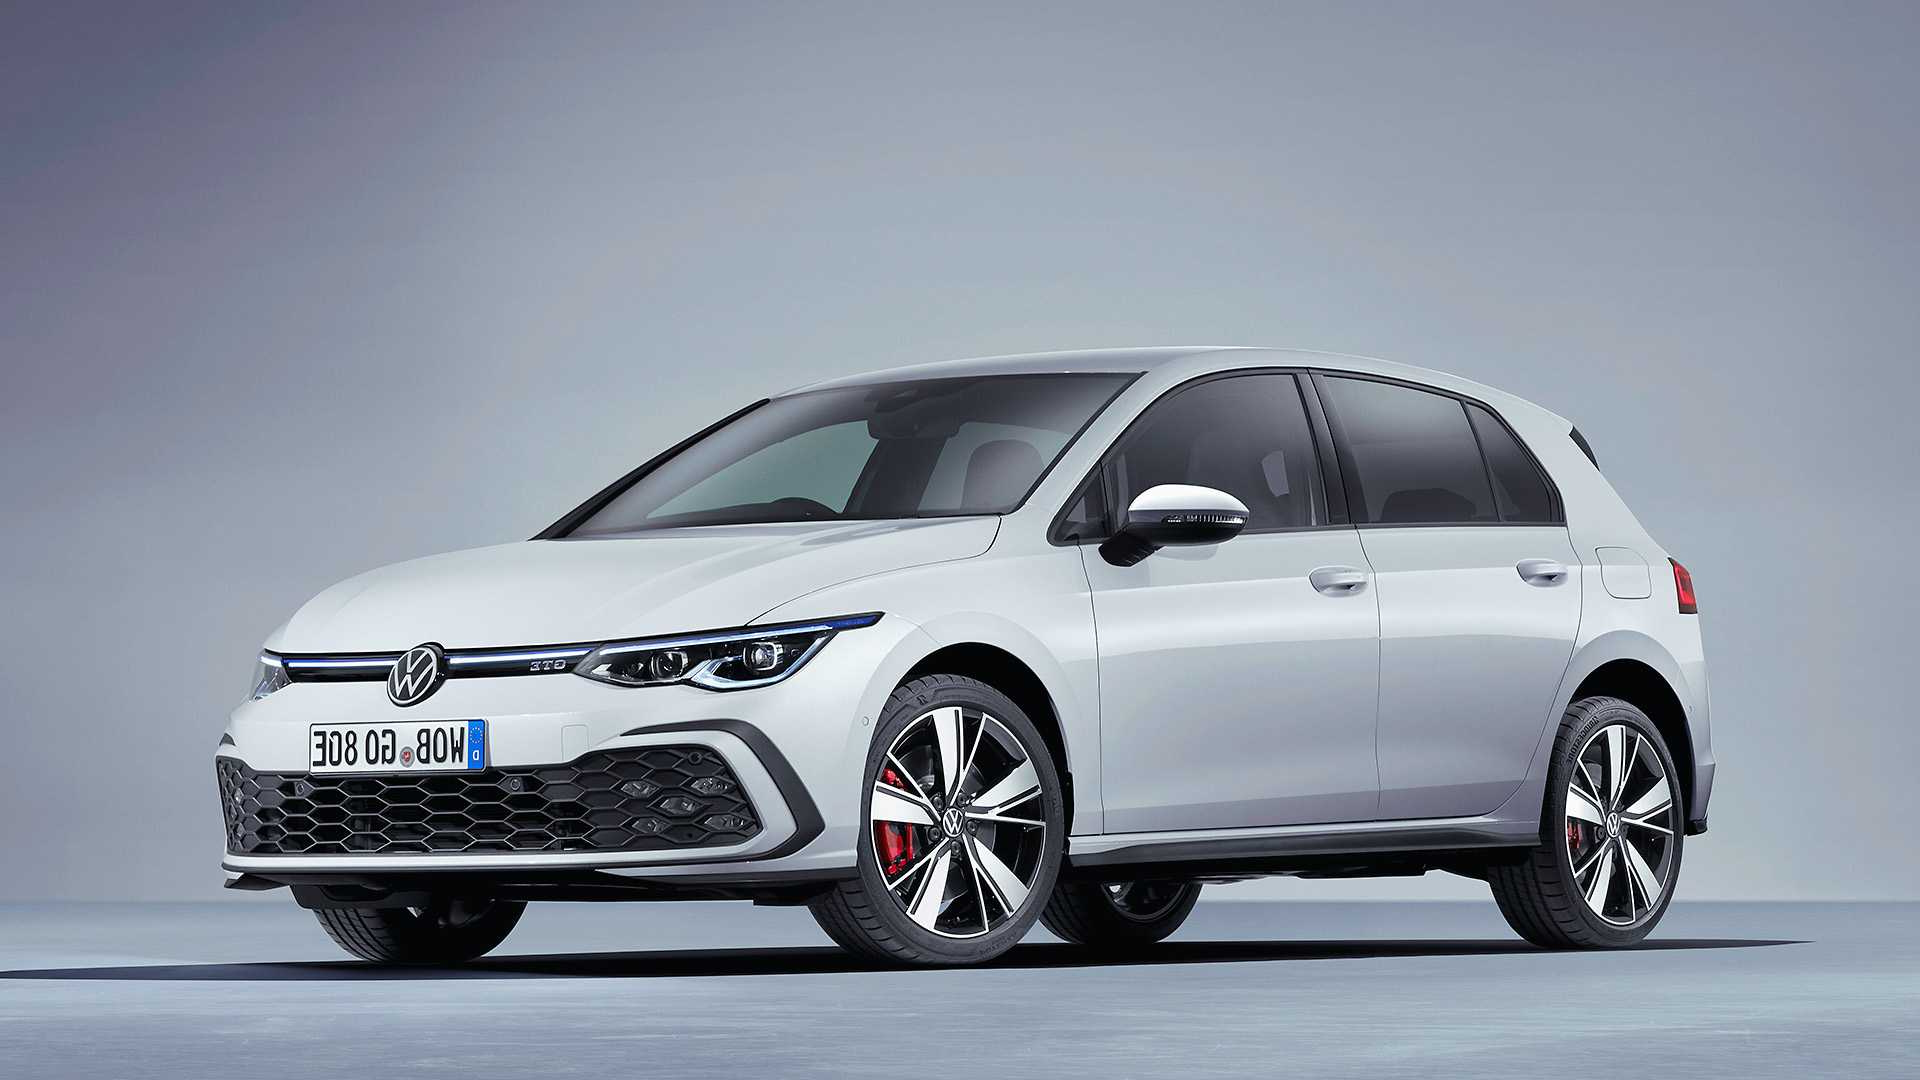 2021 vw e golf release date color prices  volkswagen